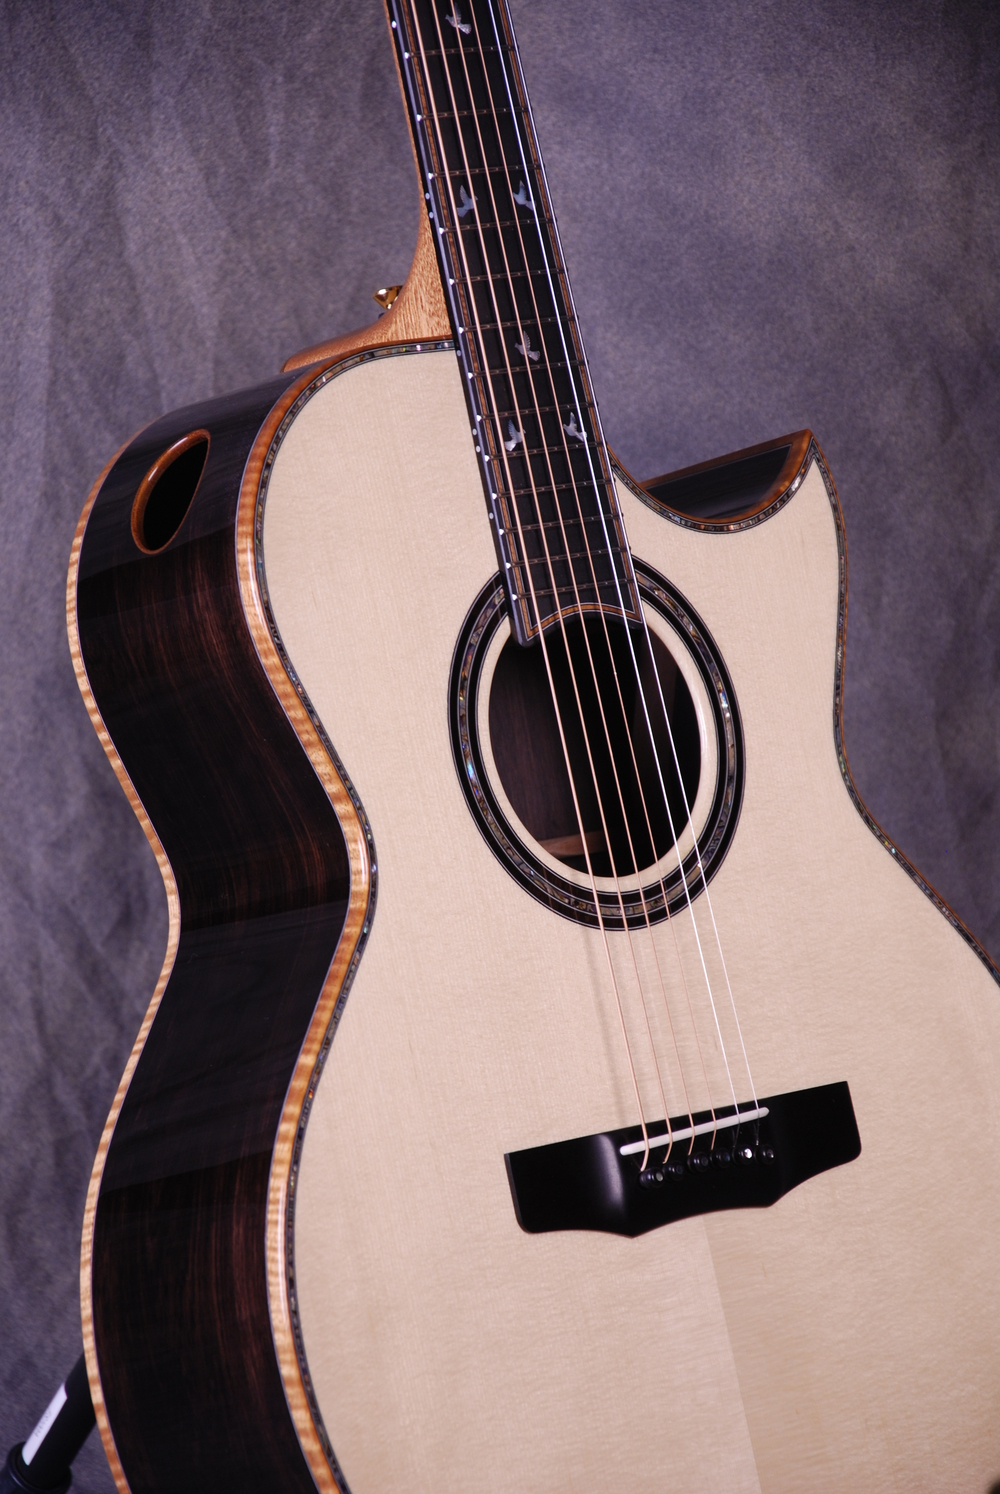 S/N 401 African Blackwood Back/Sides, Italian-Alpine Spruce Top